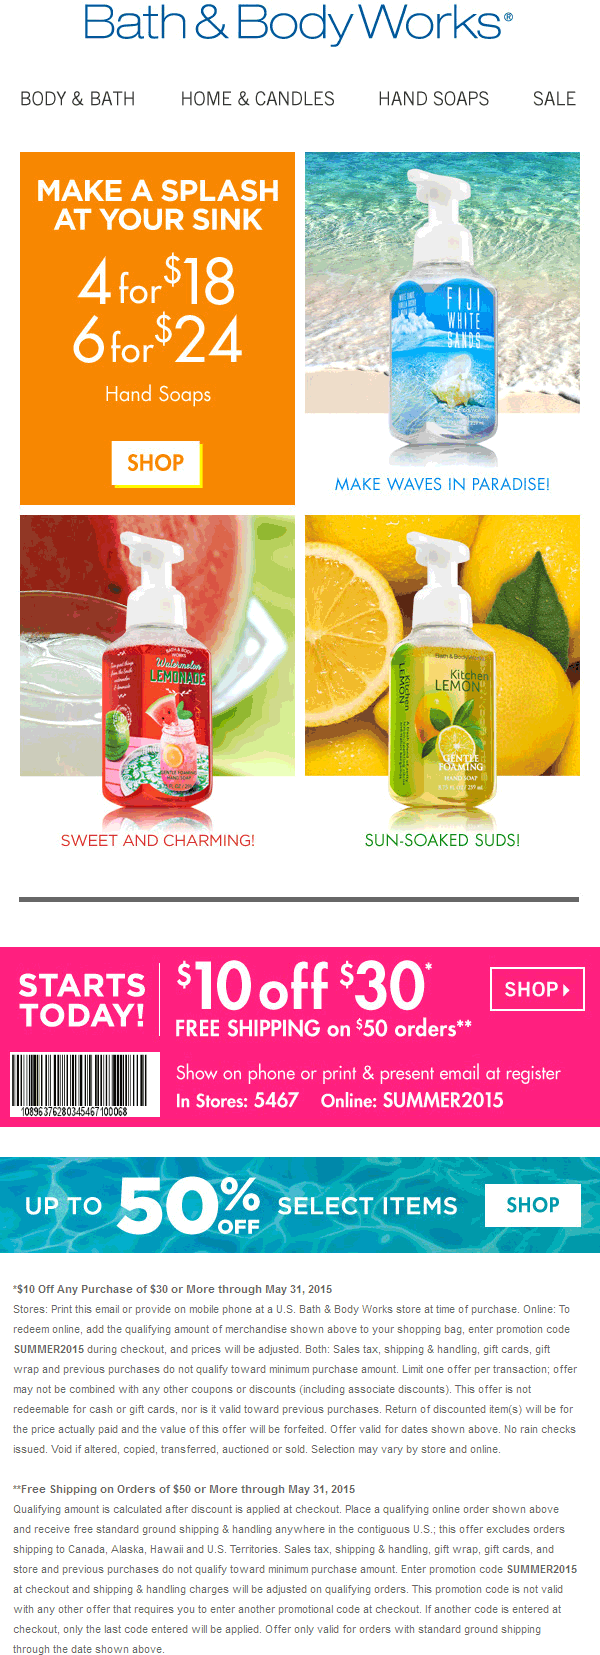 Bath & Body Works Coupon July 2017 $10 off $30 at Bath & Body Works, or online via promo code SUMMER2015